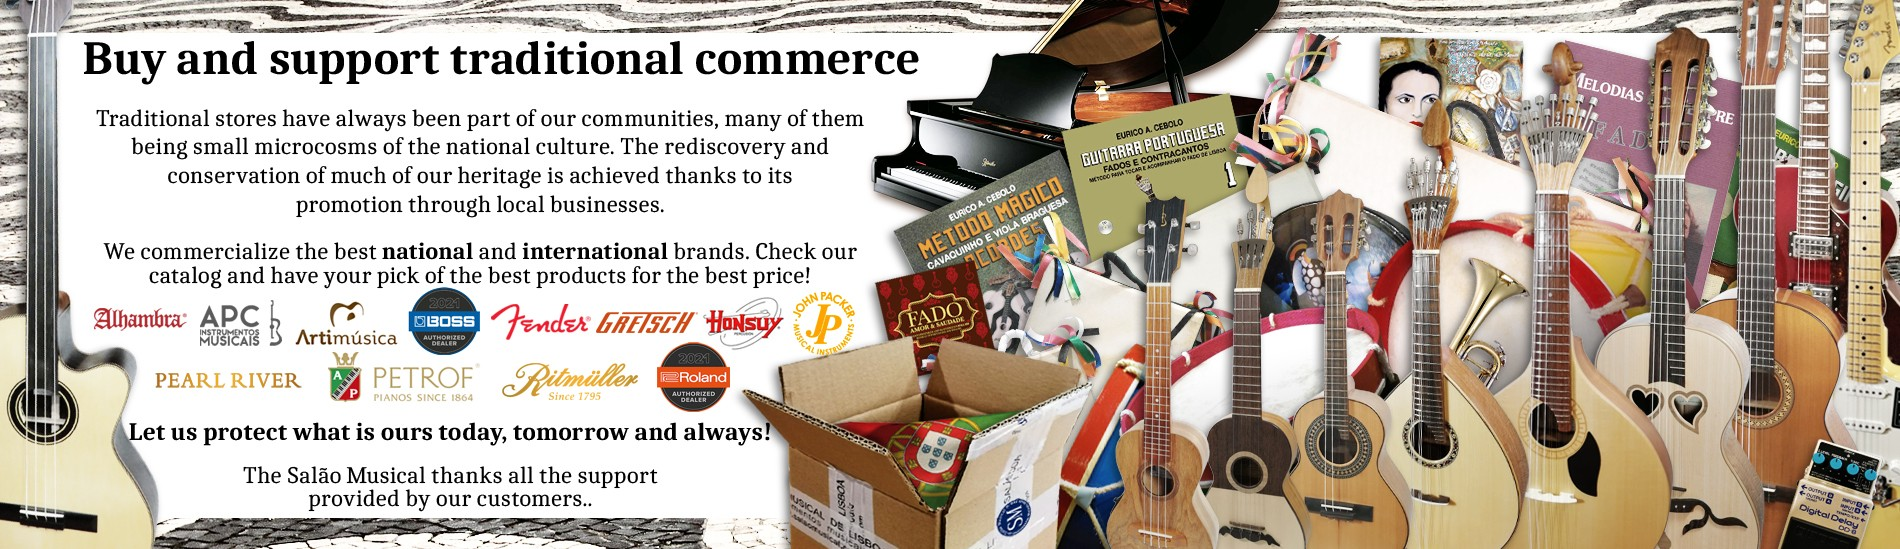 Support traditional commerce! - Let us protetc what's ours now, tomorrow and always!